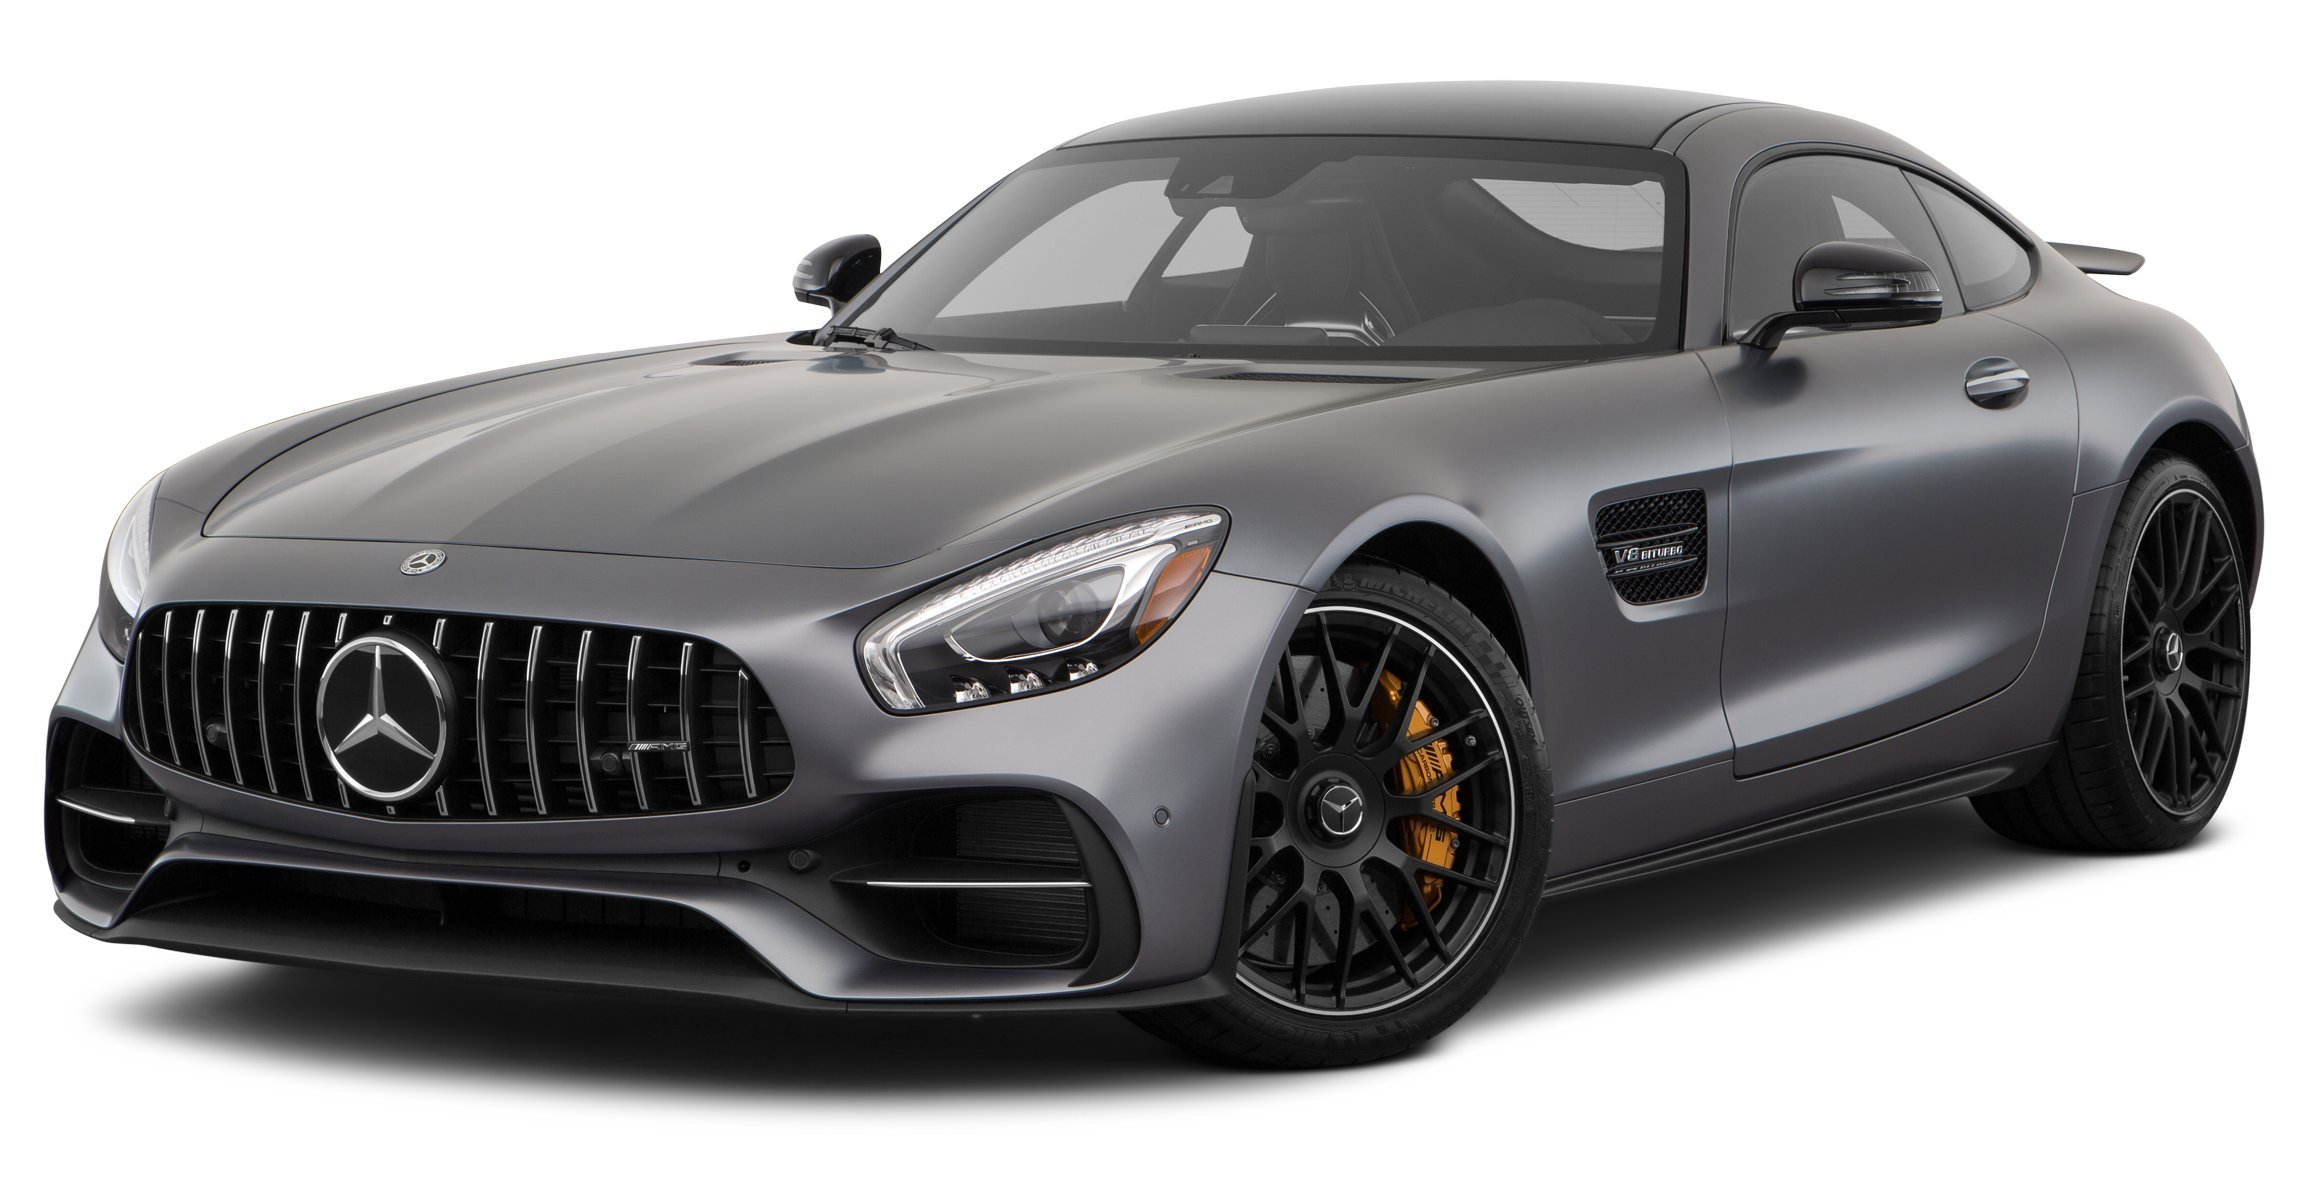 2018 mercedes benz amg gt r reviews images and specs vehicles. Black Bedroom Furniture Sets. Home Design Ideas